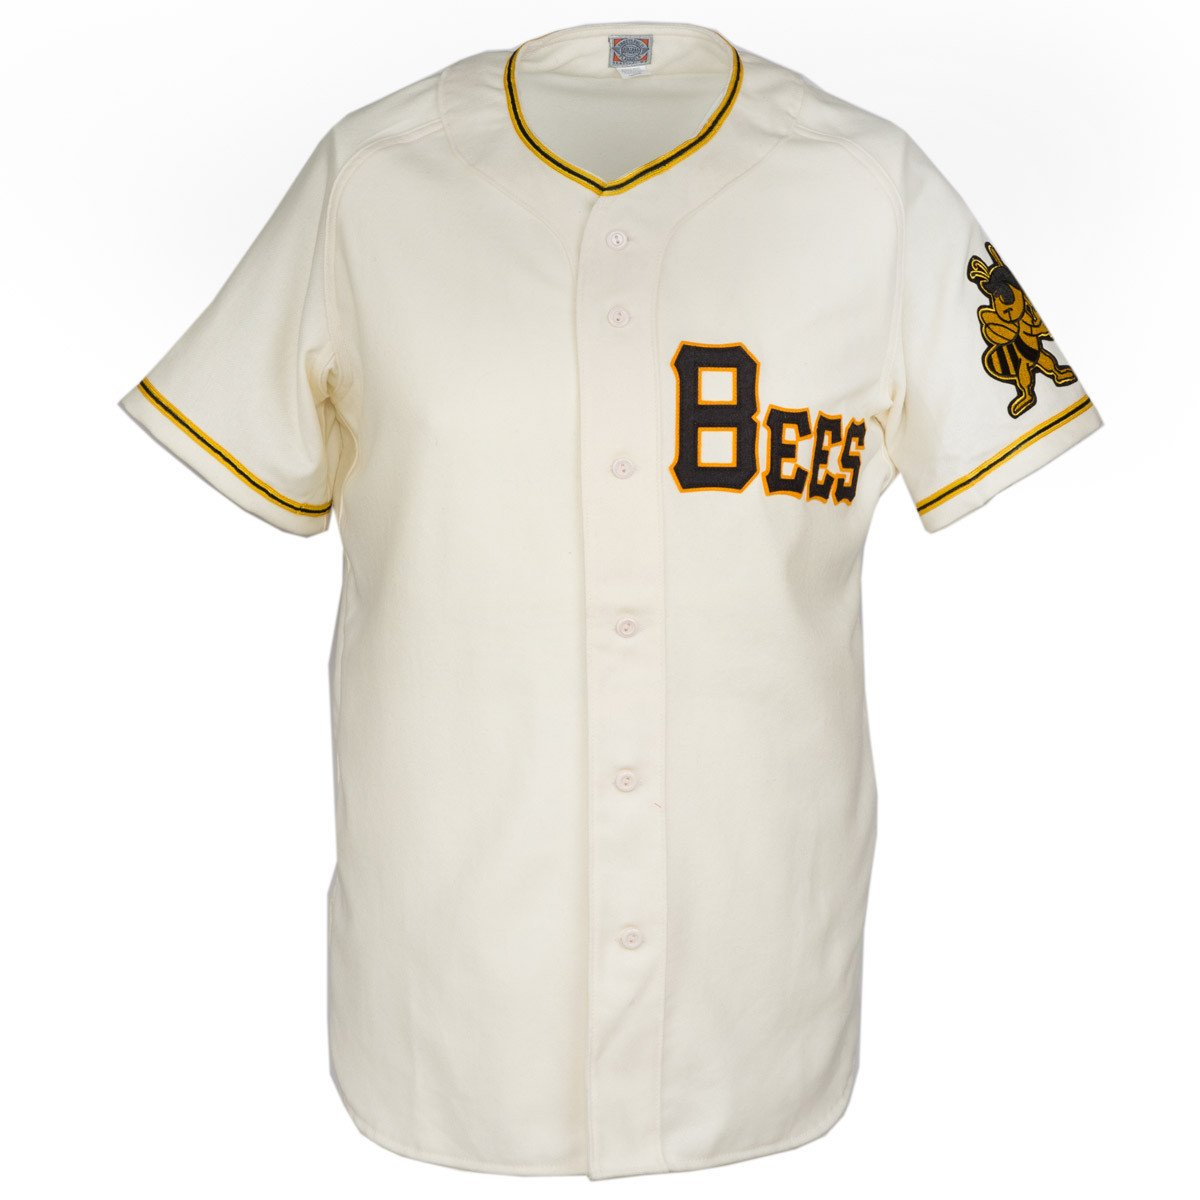 Salt Lake Bees 1959 Home Jersey 100% Stitched Embroidery Vintage Baseball Jerseys Custom Any Name Any Number Free Shipping